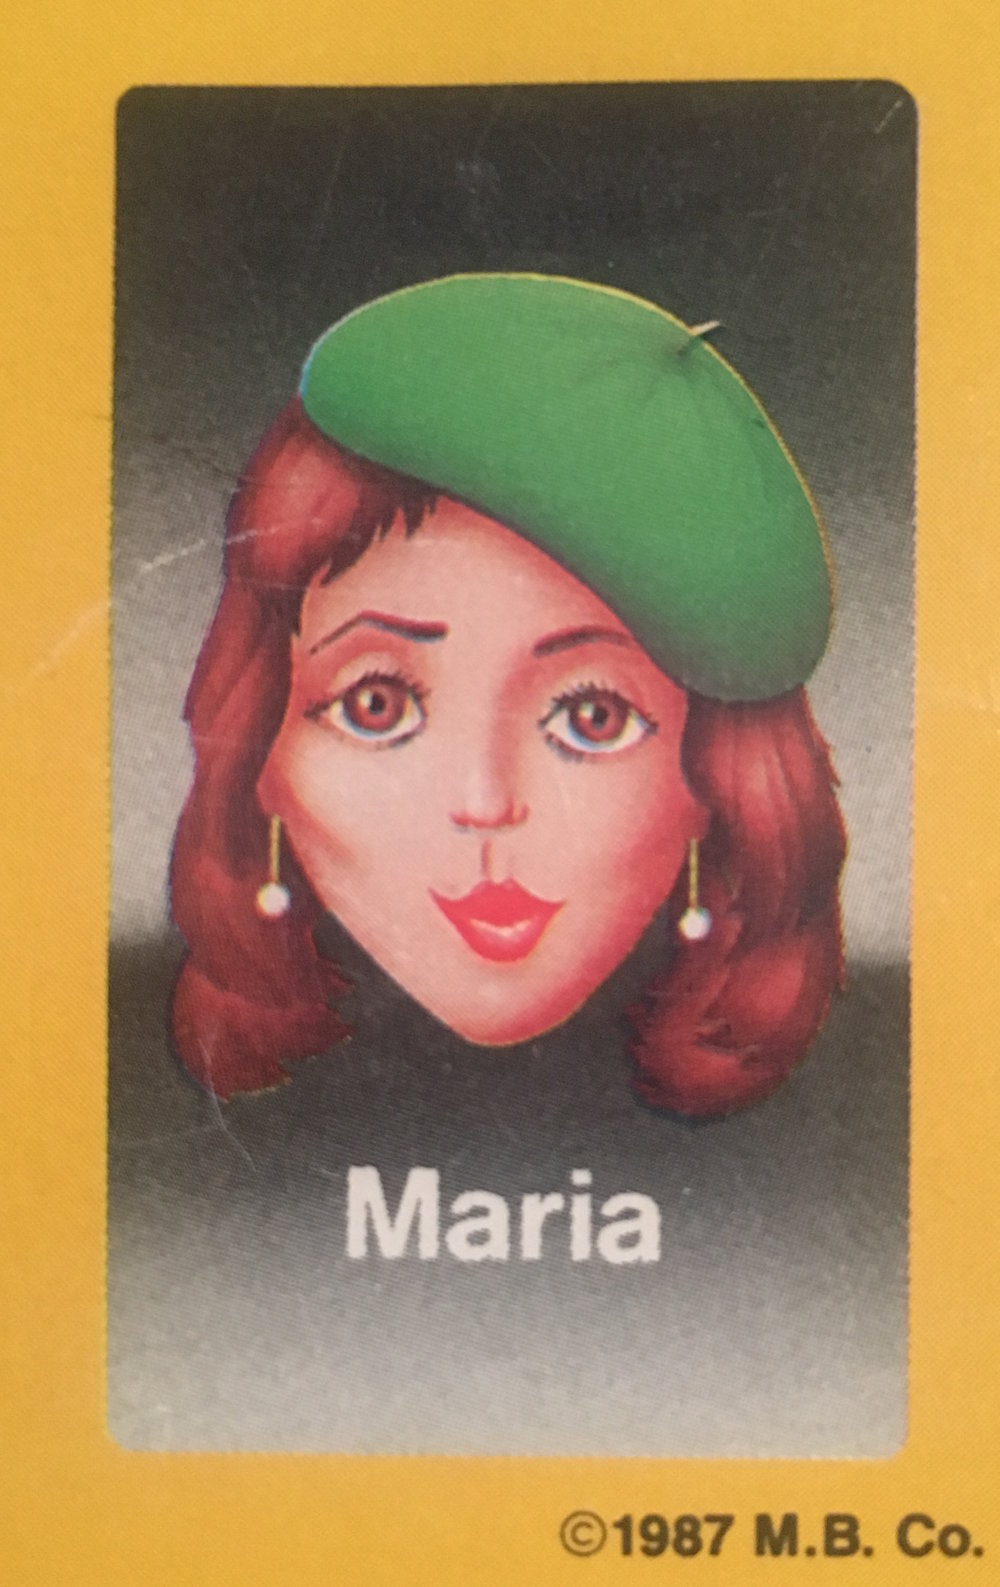 - As a beautiful Bohemian woman from Paris, Maria was an easy choice for the Guess Who?® marketing team. The problems began after her picture was taken and sent all over the world. When she saw her game-face-card, she hated it, feeling she didn't look her best. Things only spiraled from there; she believed if she could somehow improve her looks, the public would recognize that the Guess Who?® picture was not representative of her at her most gorgeous. More than 30 surgeries later, Maria now looks like a mannequin left out in the sun too long. She still dons her distinctive green beret, hoping each morning when she looks in the mirror, it will be the stunning face she always imagined meeting her sorrowful gaze.